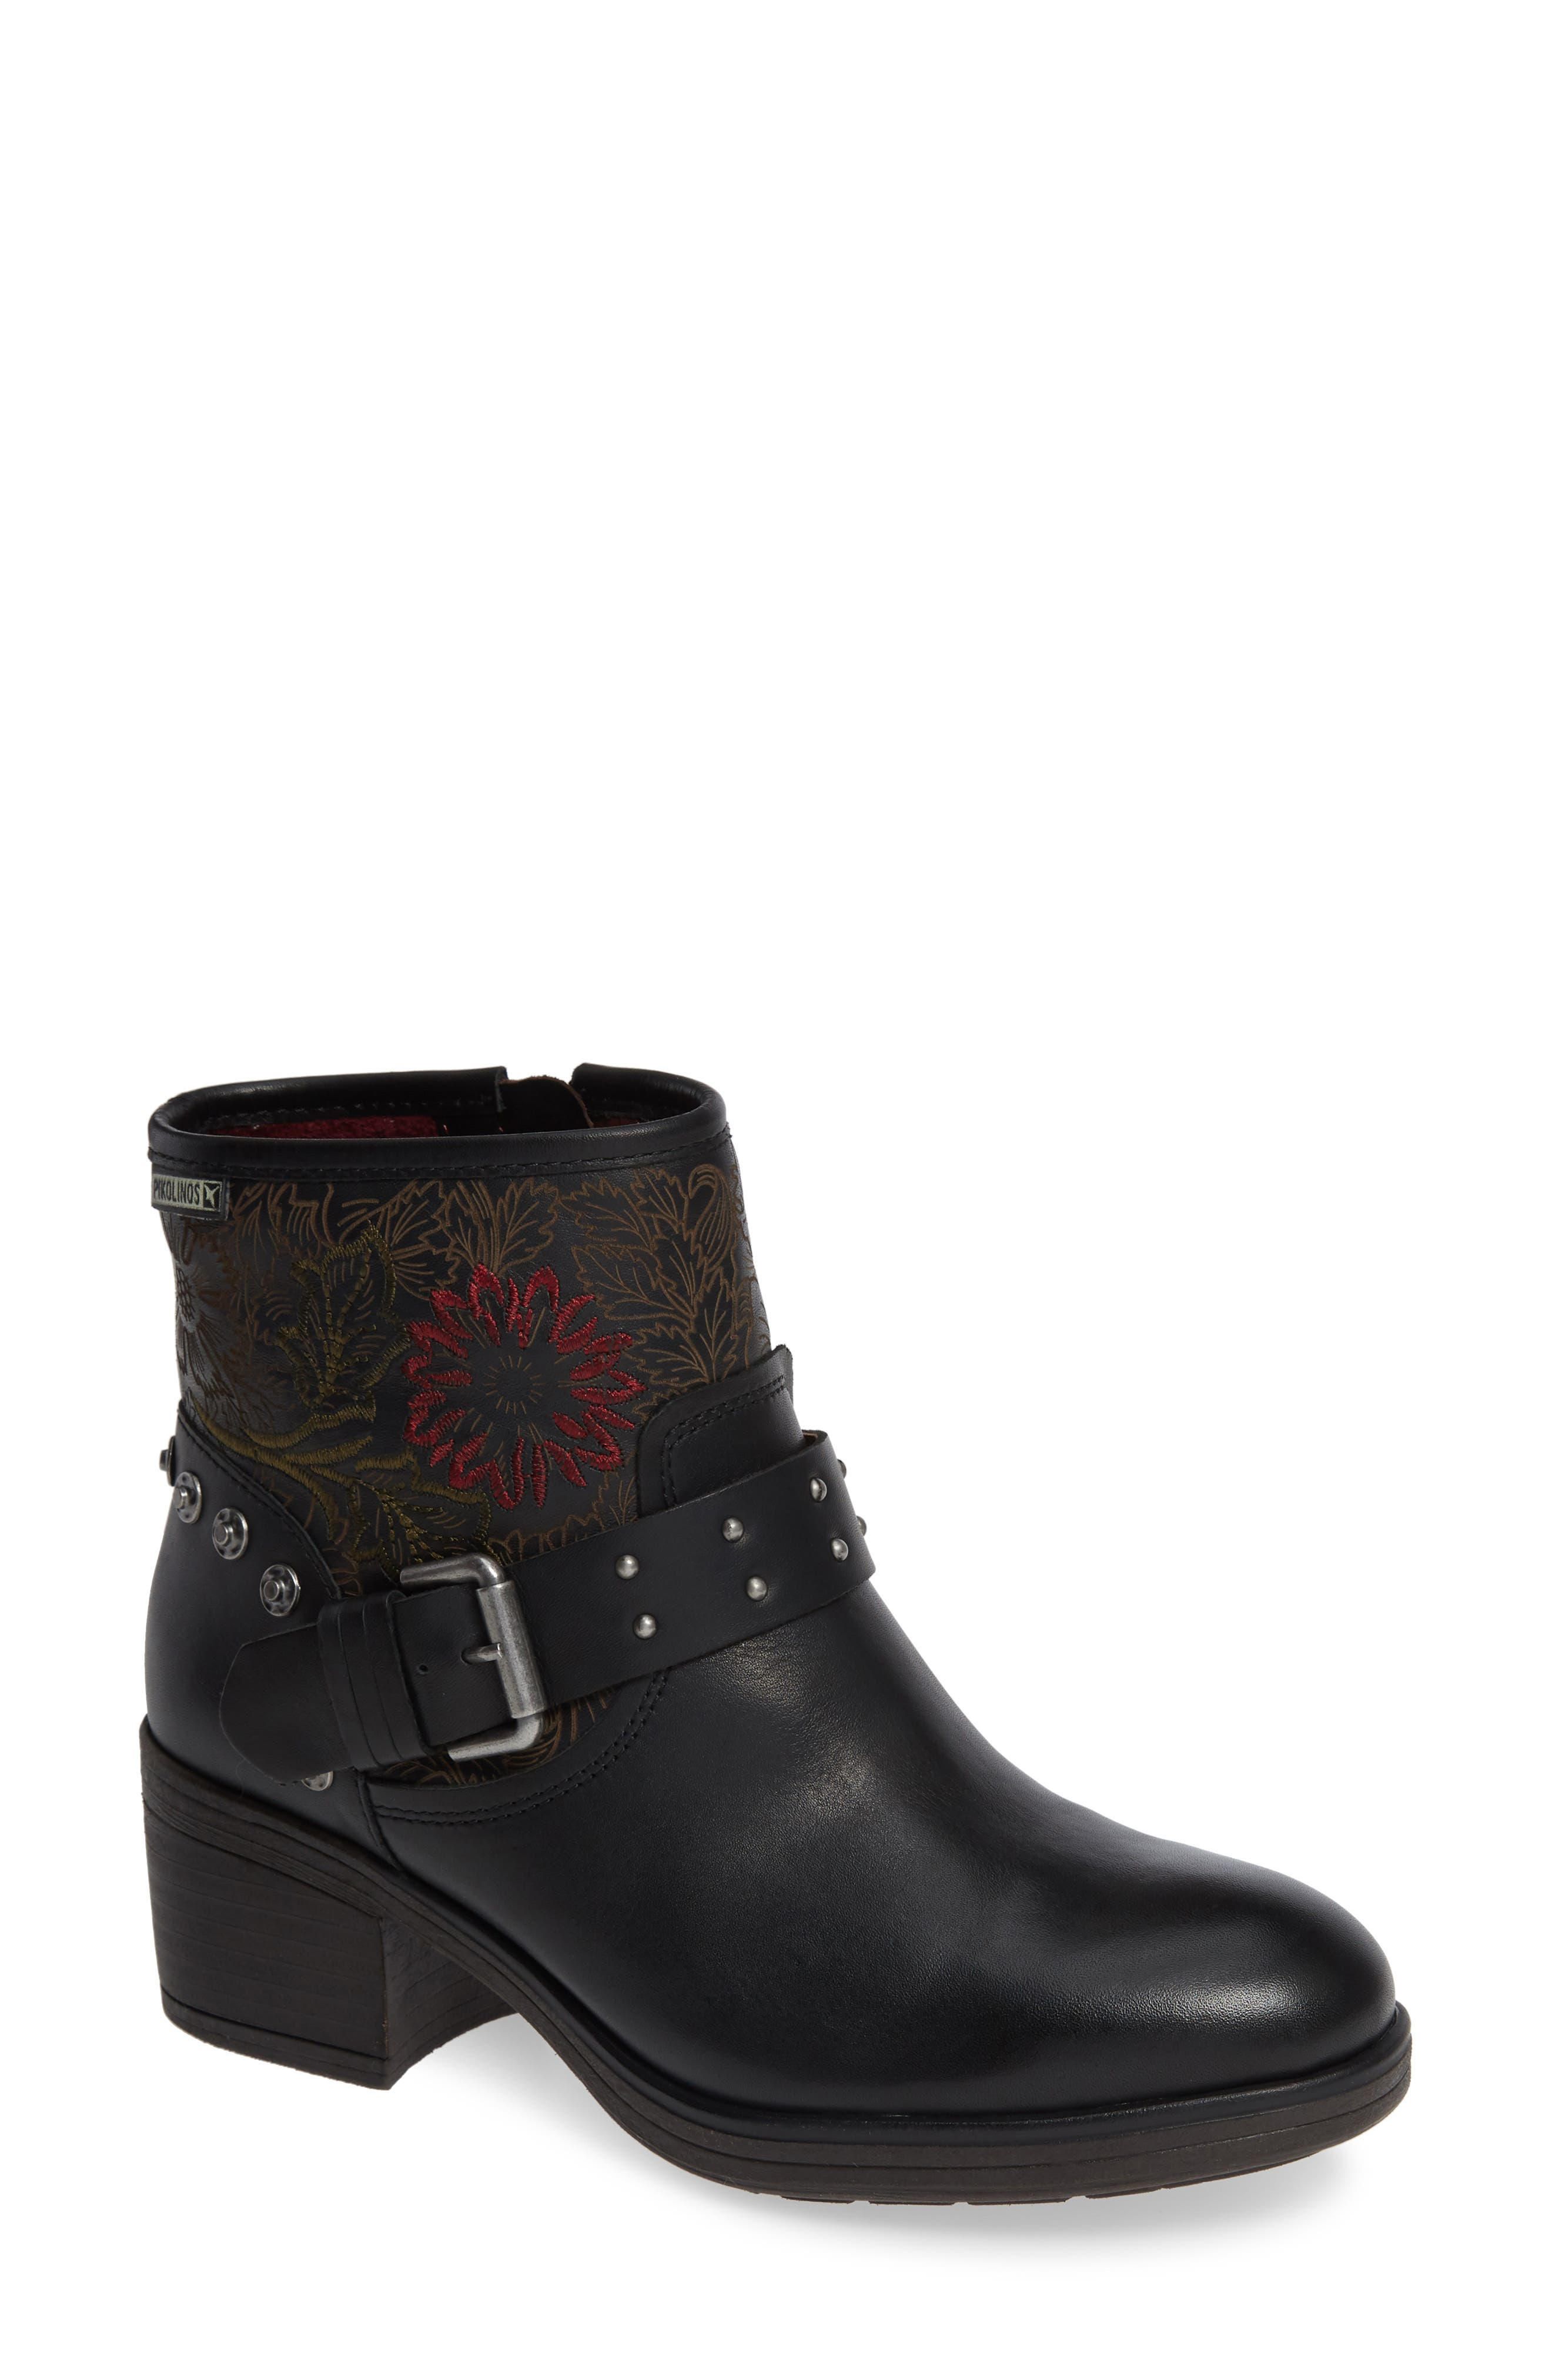 Lyon Embroidered Engineer Bootie,                         Main,                         color, BLACK LEATHER